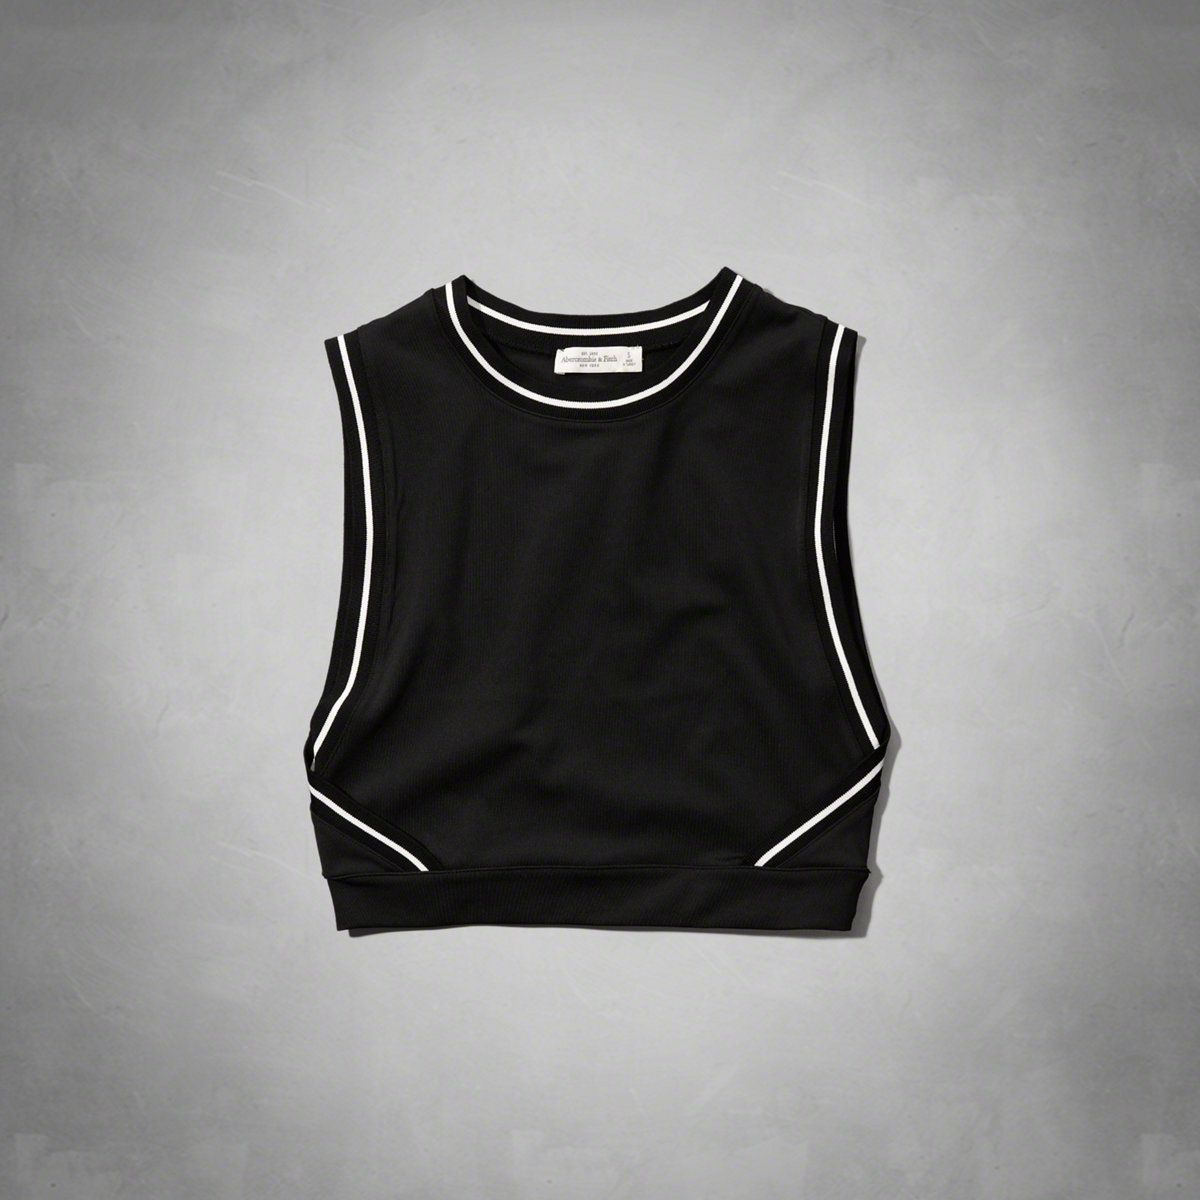 """Abercrombie Cropped Sporty Tank, $25; &lt;a href=""""http://www.abercrombie.com/shop/us/womens-sport-to-street/cropped-sporty-tank-4153573_01?ofp=true""""&gt;abercrombie.com&lt;/a&gt;   <!--EndFragment-->"""